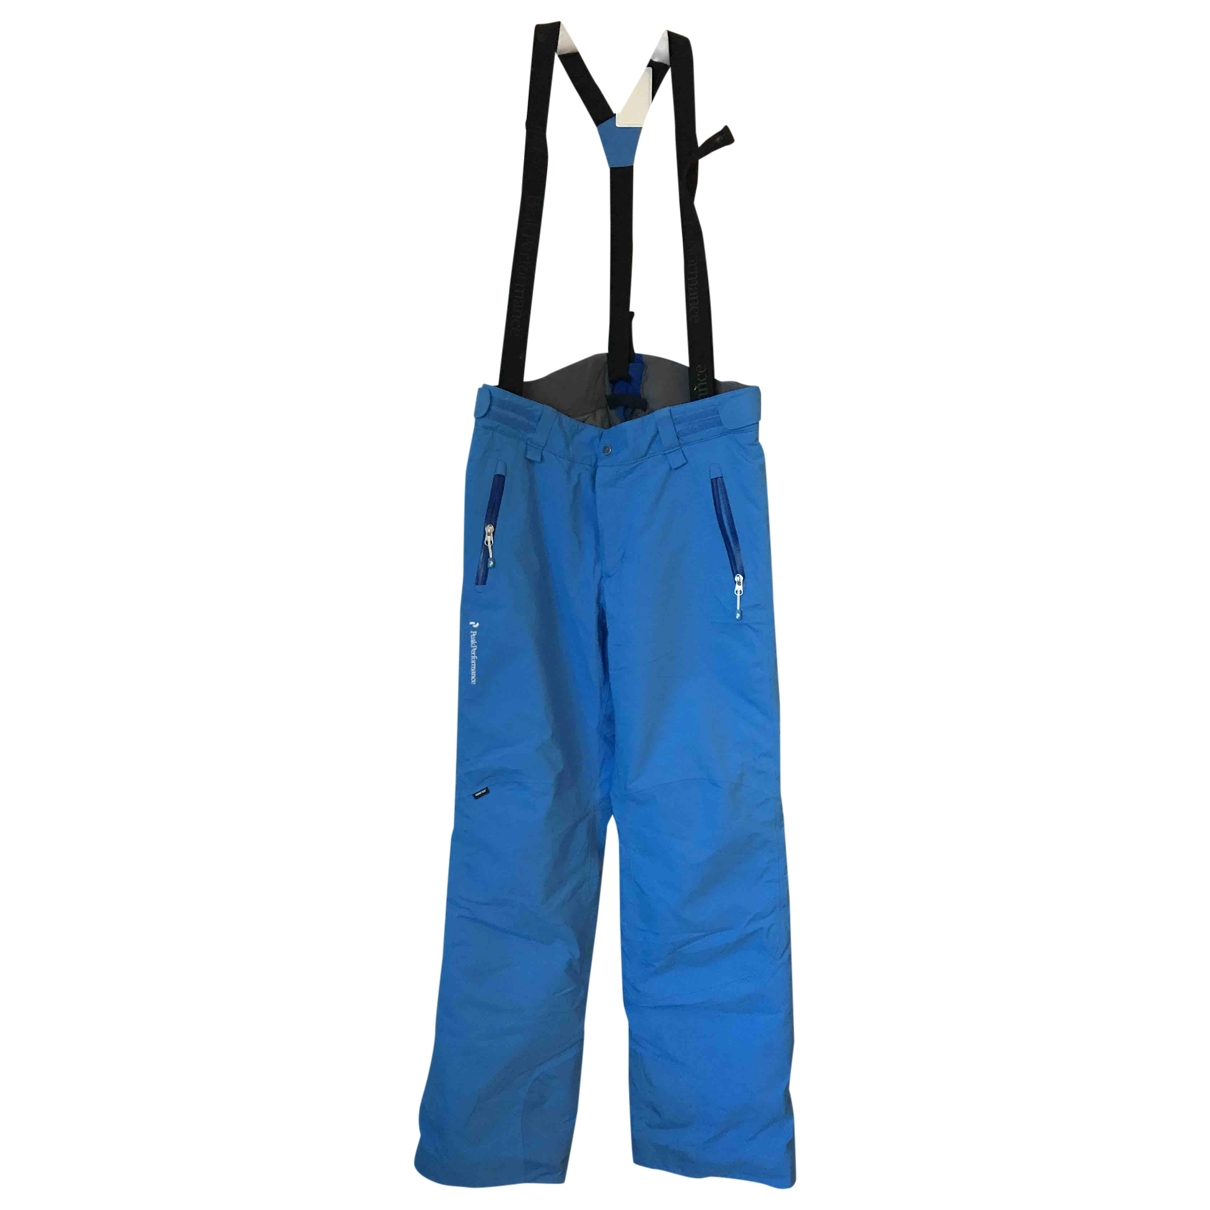 Peak Performance \N Blue Trousers for Women S International